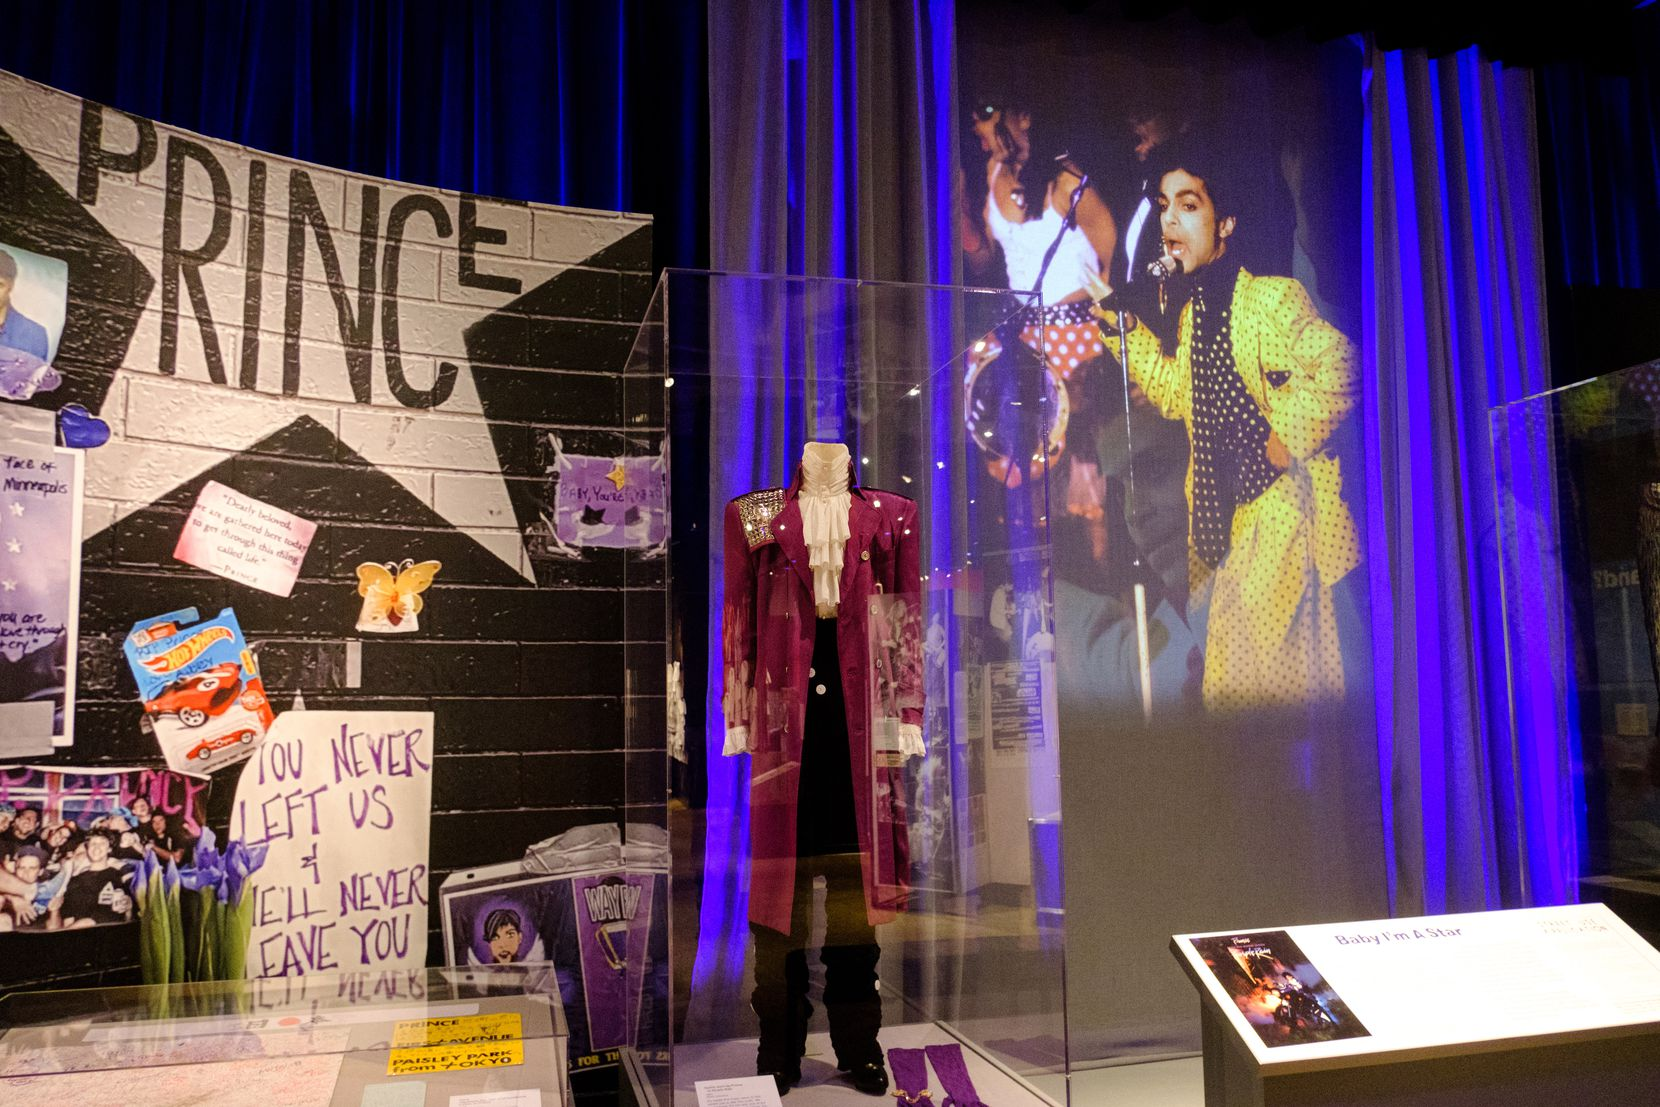 """Prince's iconic suit from """"Purple Rain"""" is on display at the Minnesota History Center through May 3, 2020."""